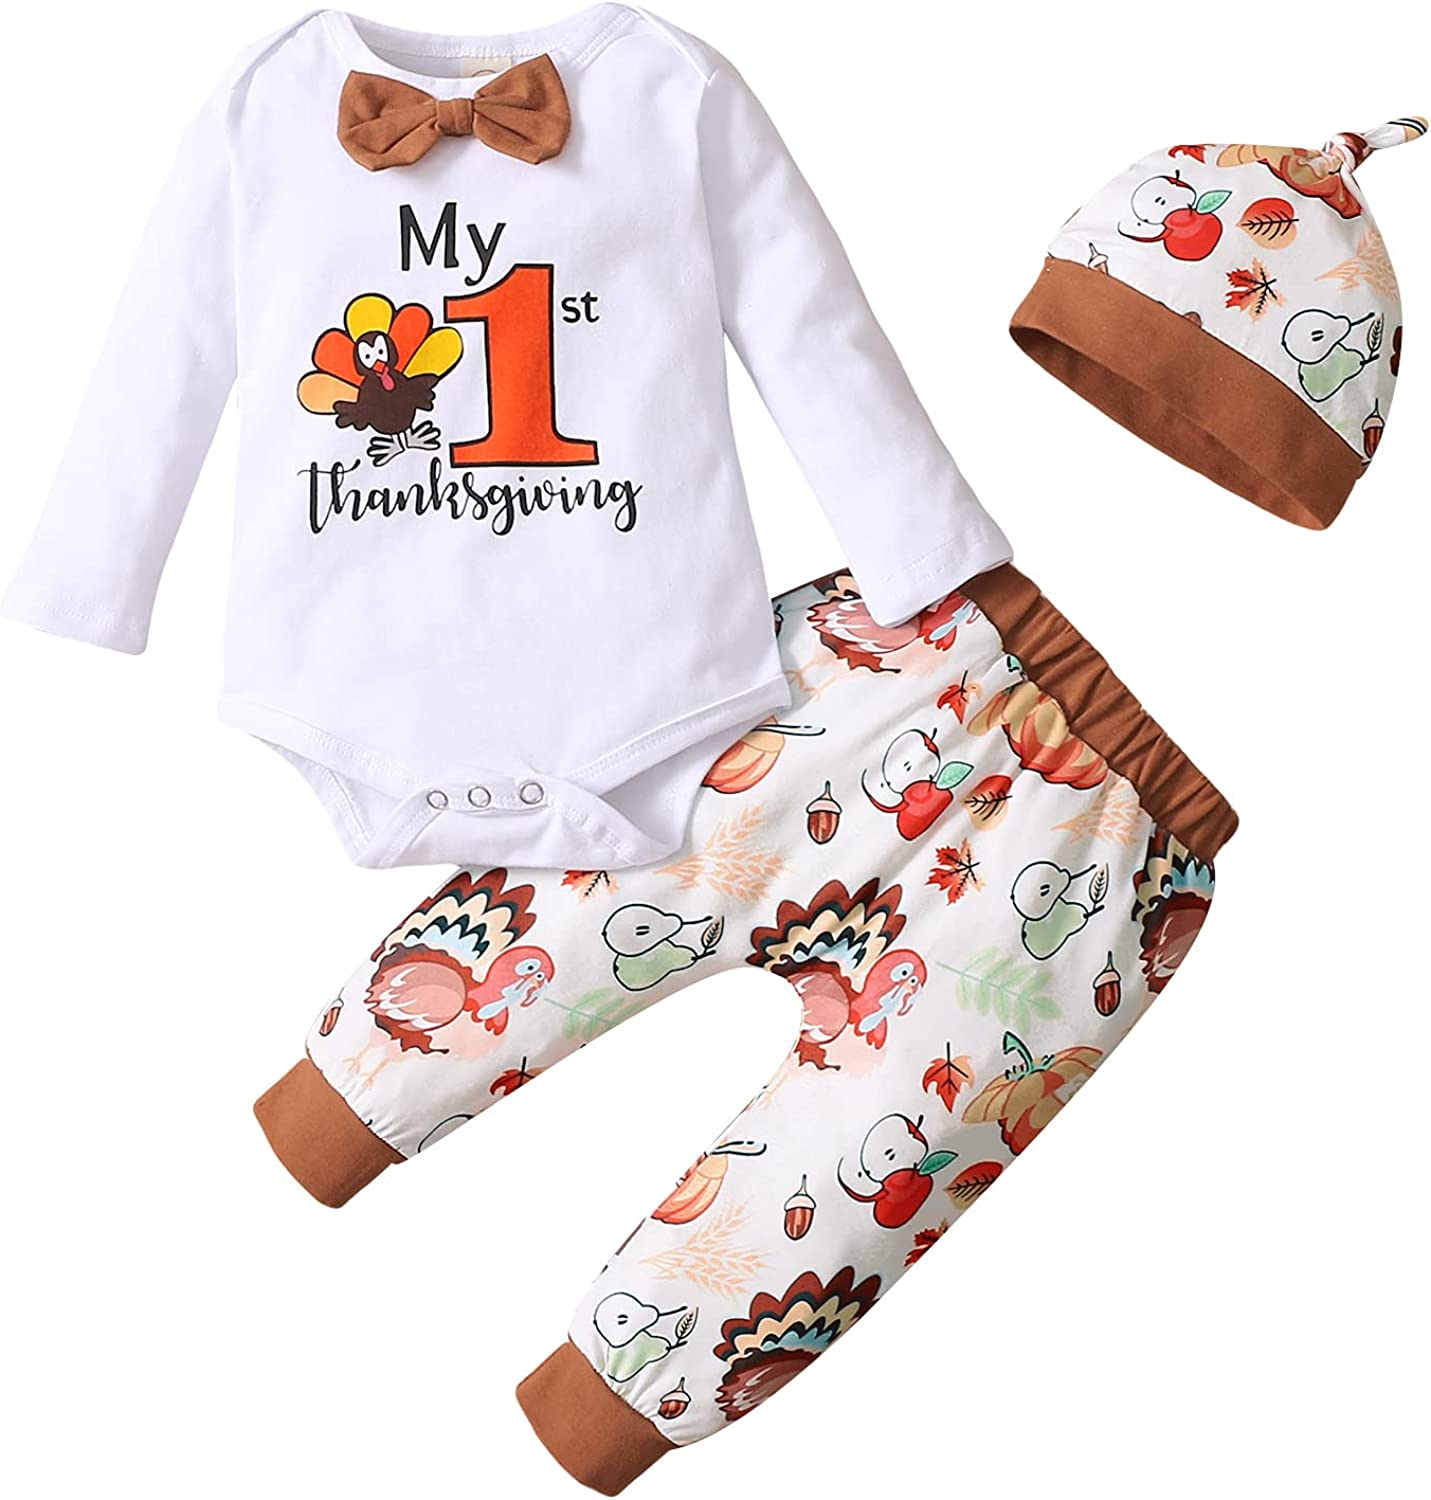 Thanksgiving Day Infant Baby Girl Boy Autumn Clothes Turkey Outfit Unisex Baby Letter Hoodie Top + Pant Set 2Pcs